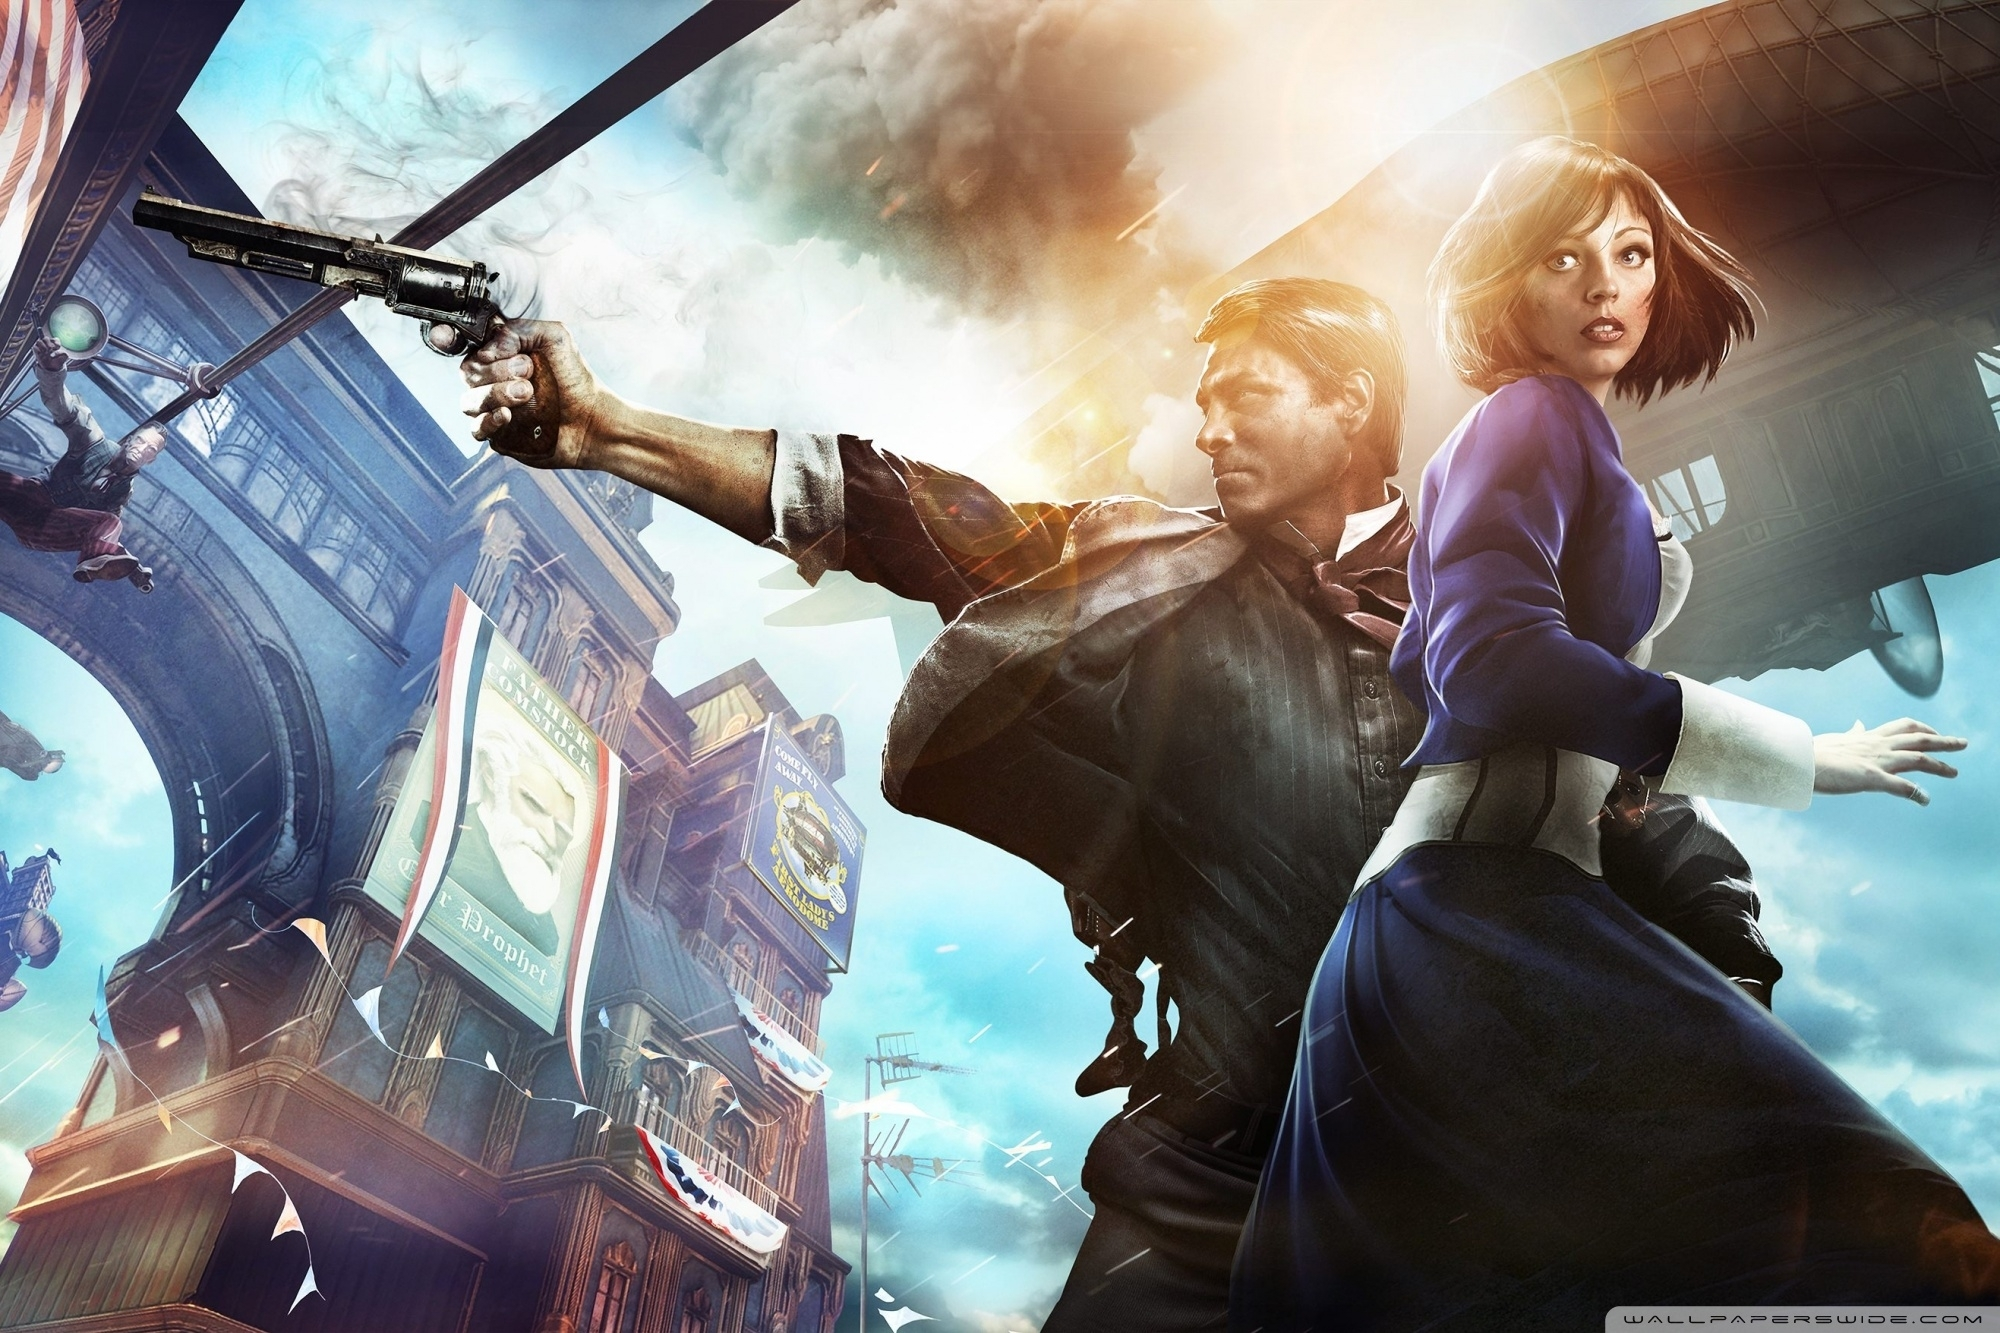 bioshock infinite ❤ 4k hd desktop wallpaper for 4k ultra hd tv